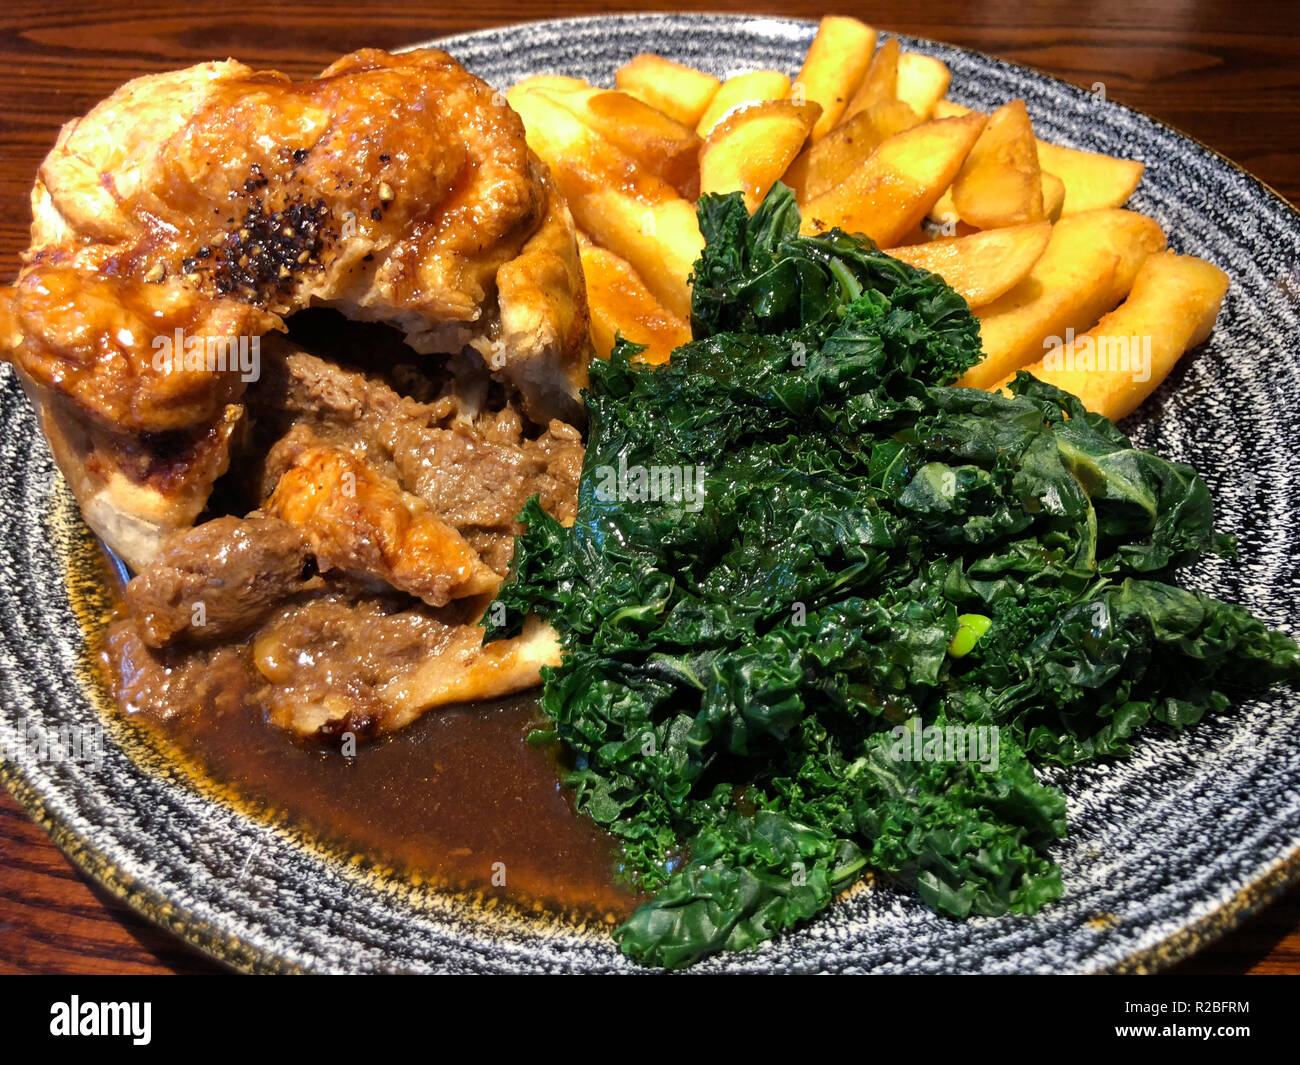 Steak pie with chips, cabbage and gravy - Stock Image